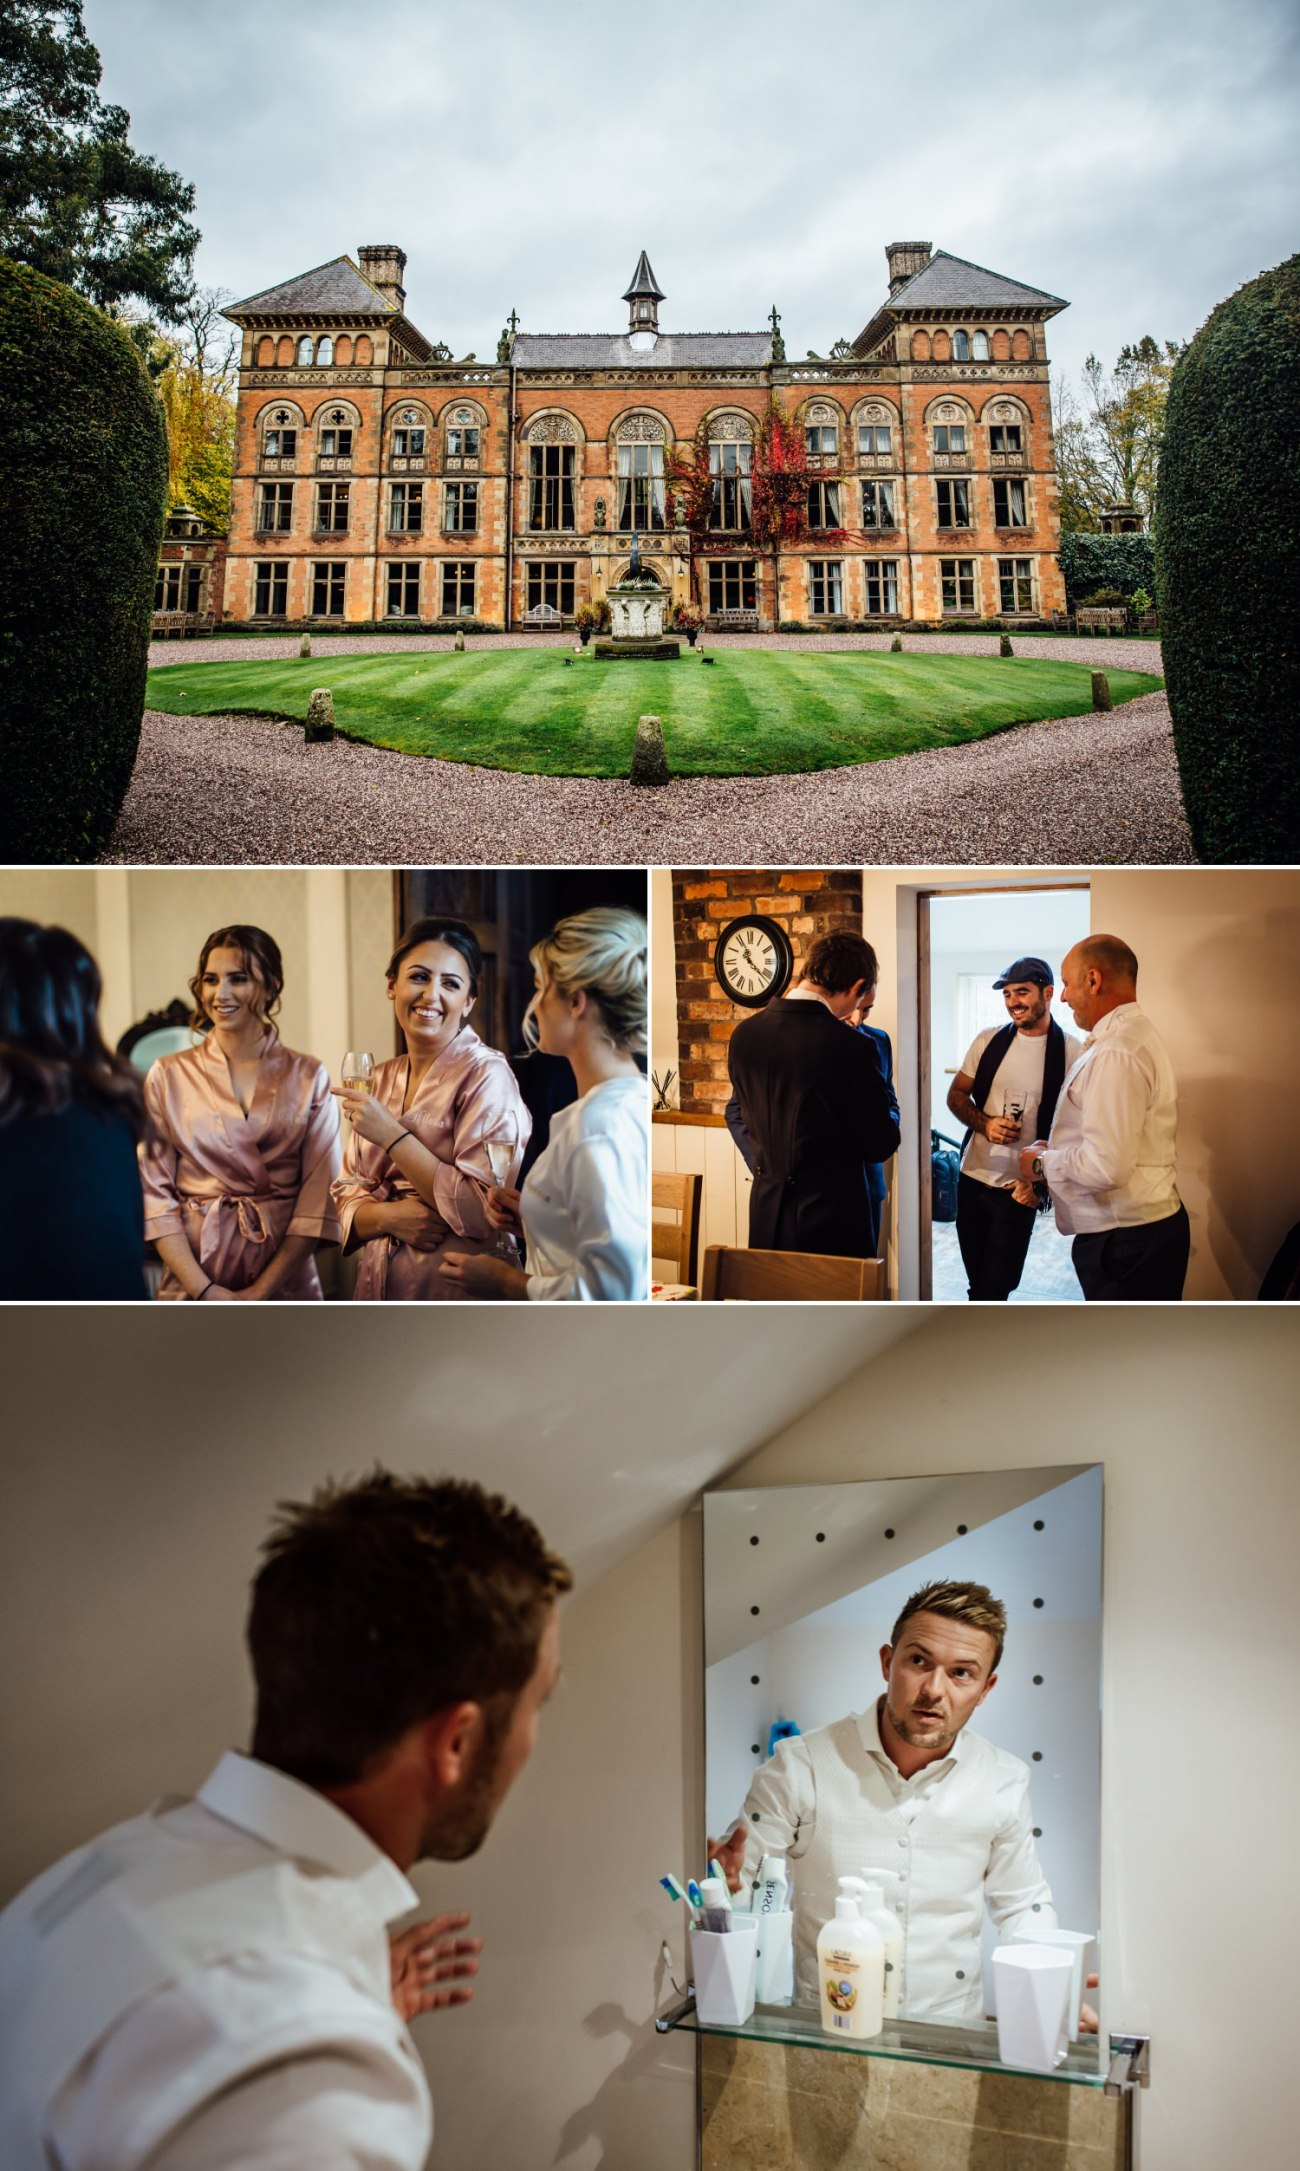 Wedding photography at Soughton Hall mold showing the getting ready